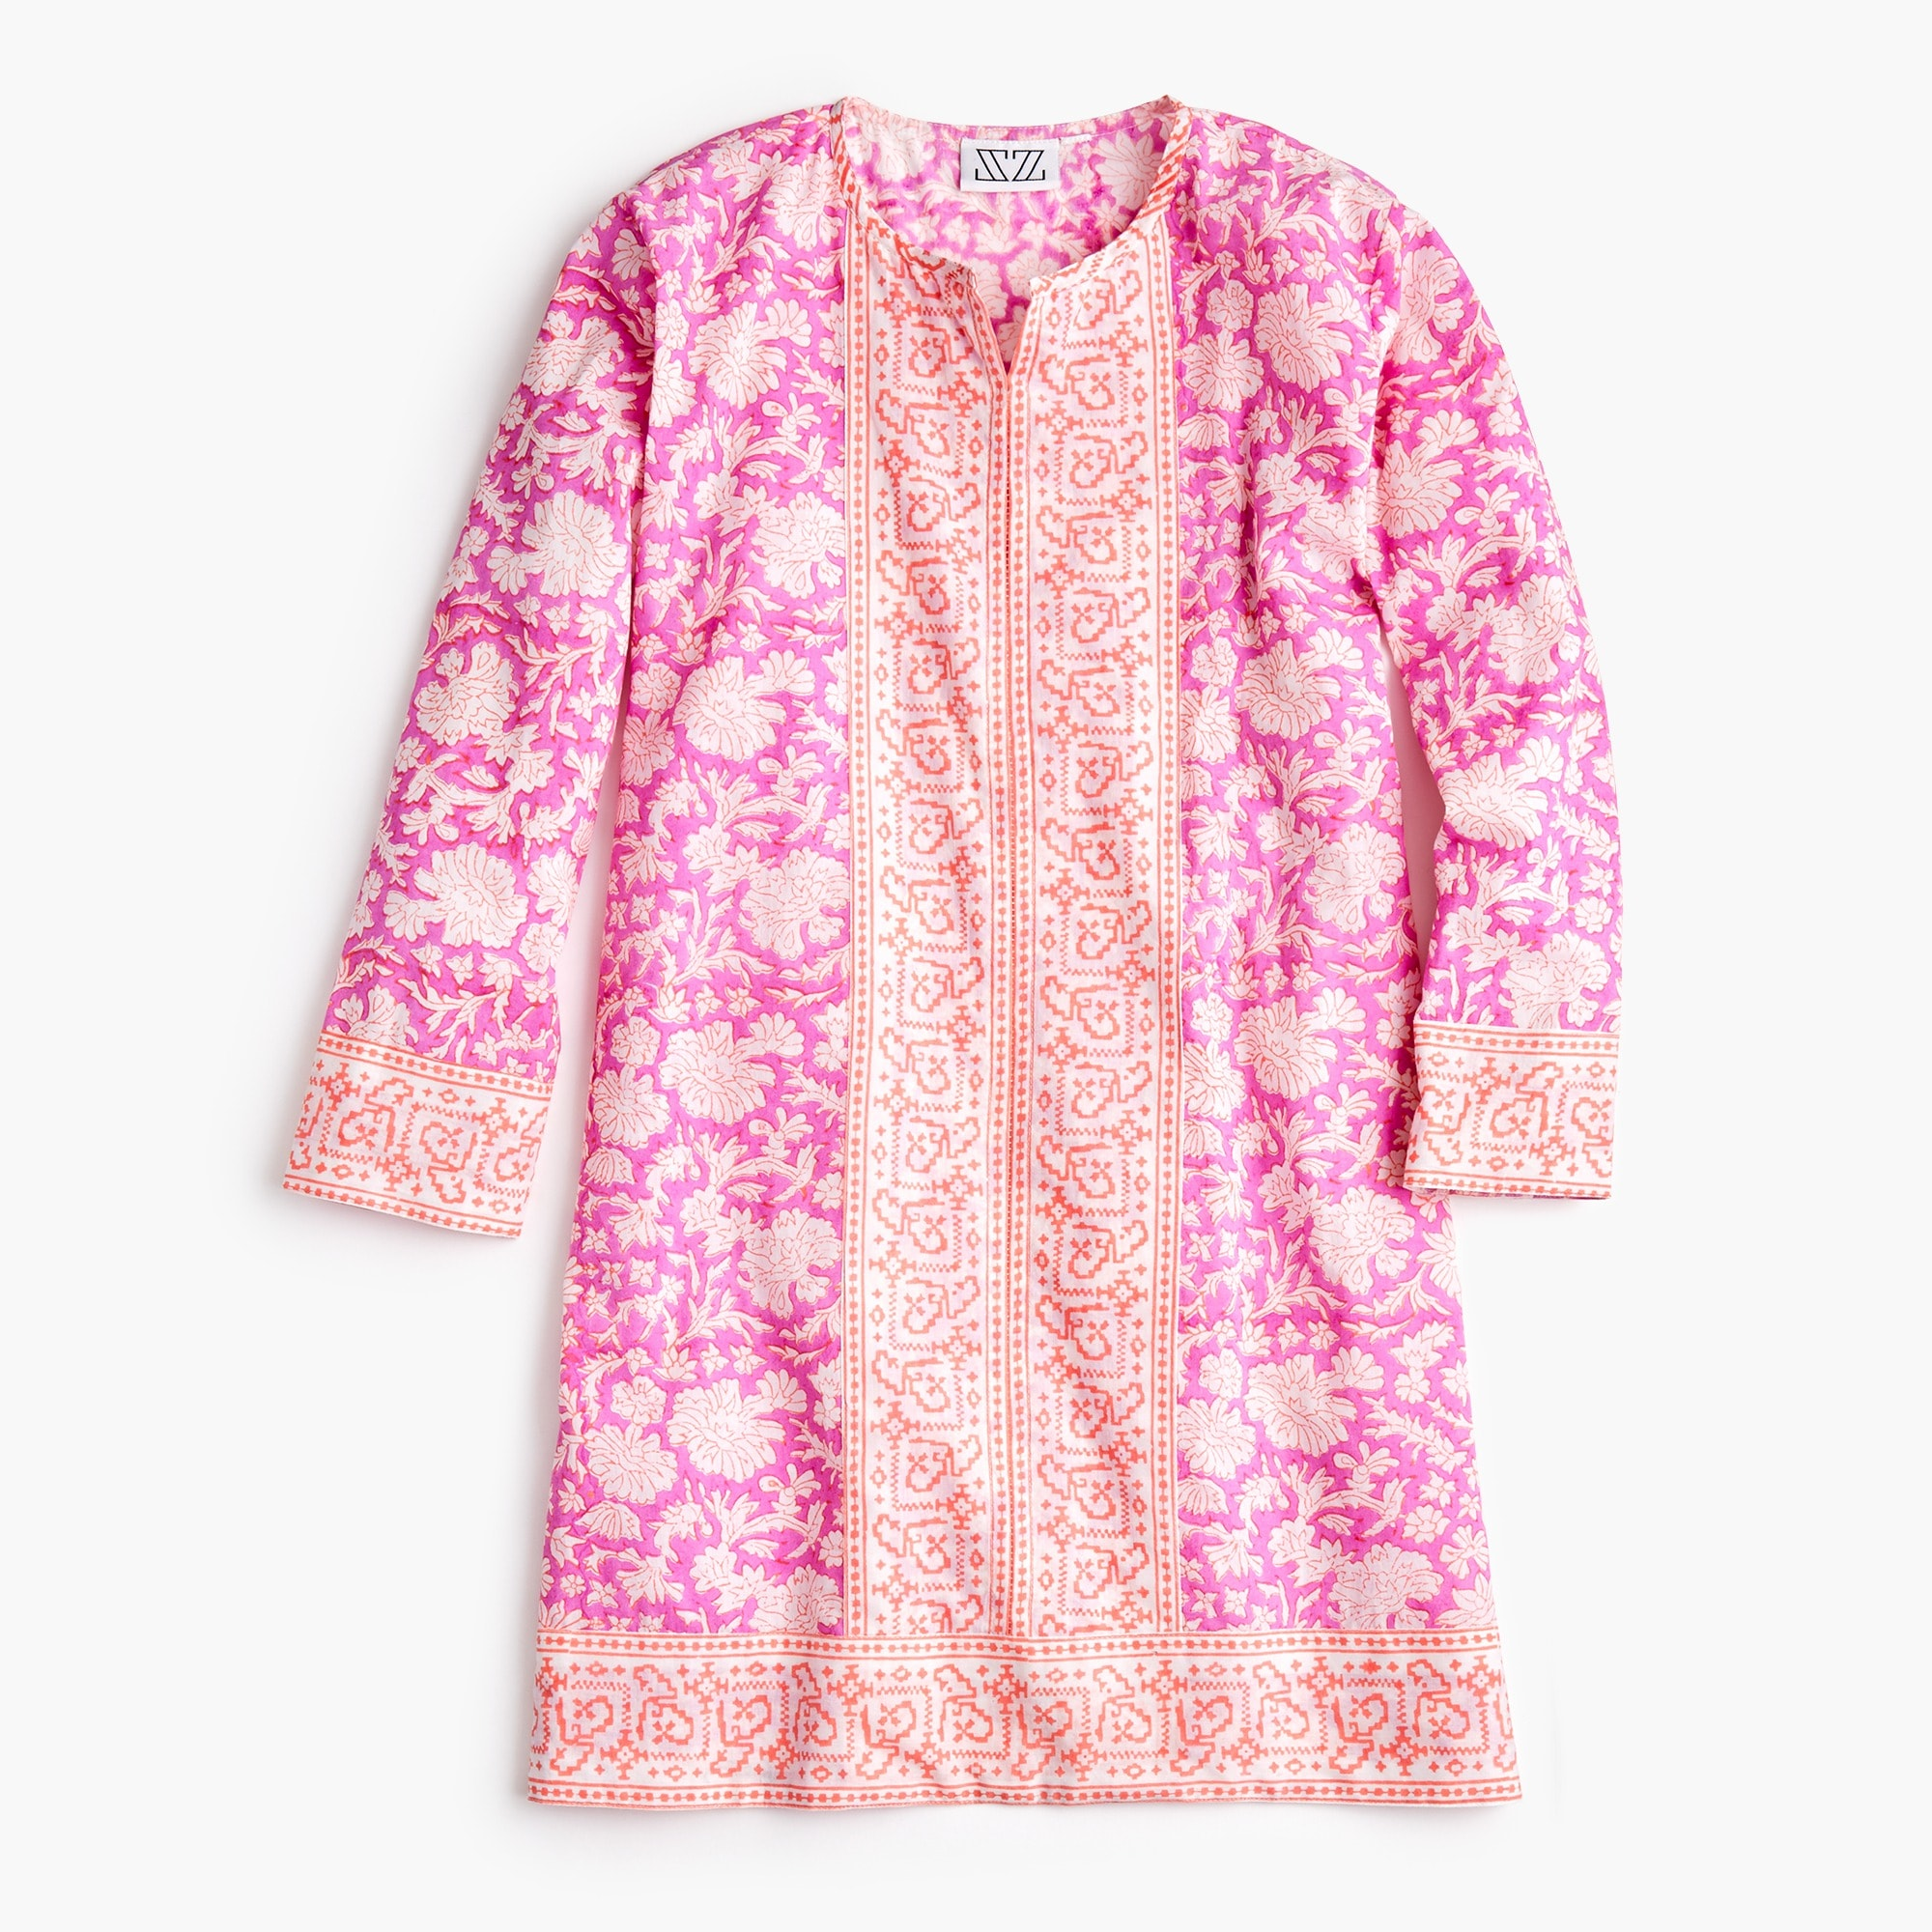 girls Girls' SZ Blockprints™ for crewcuts Kurta tunic in pink floral